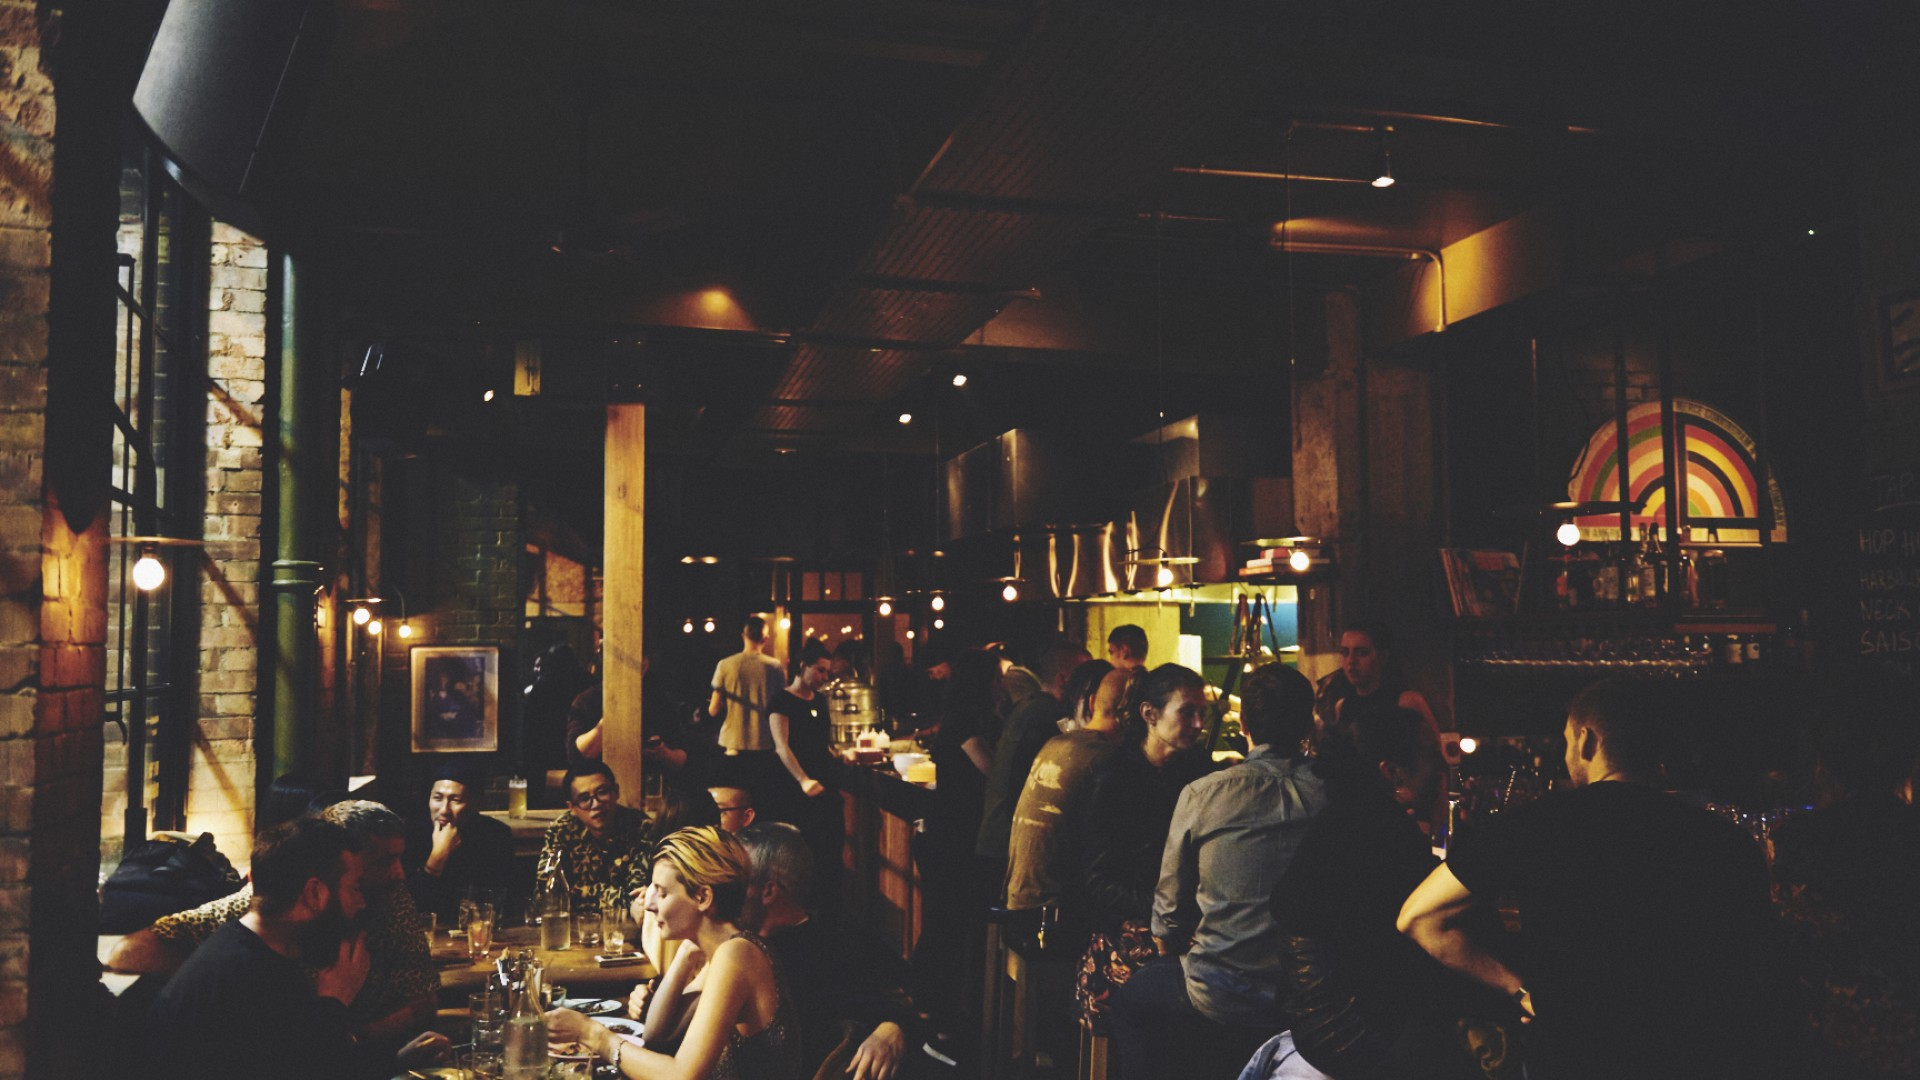 The bustling interior at Smoking Goat Shoreditch on Redchurch Street